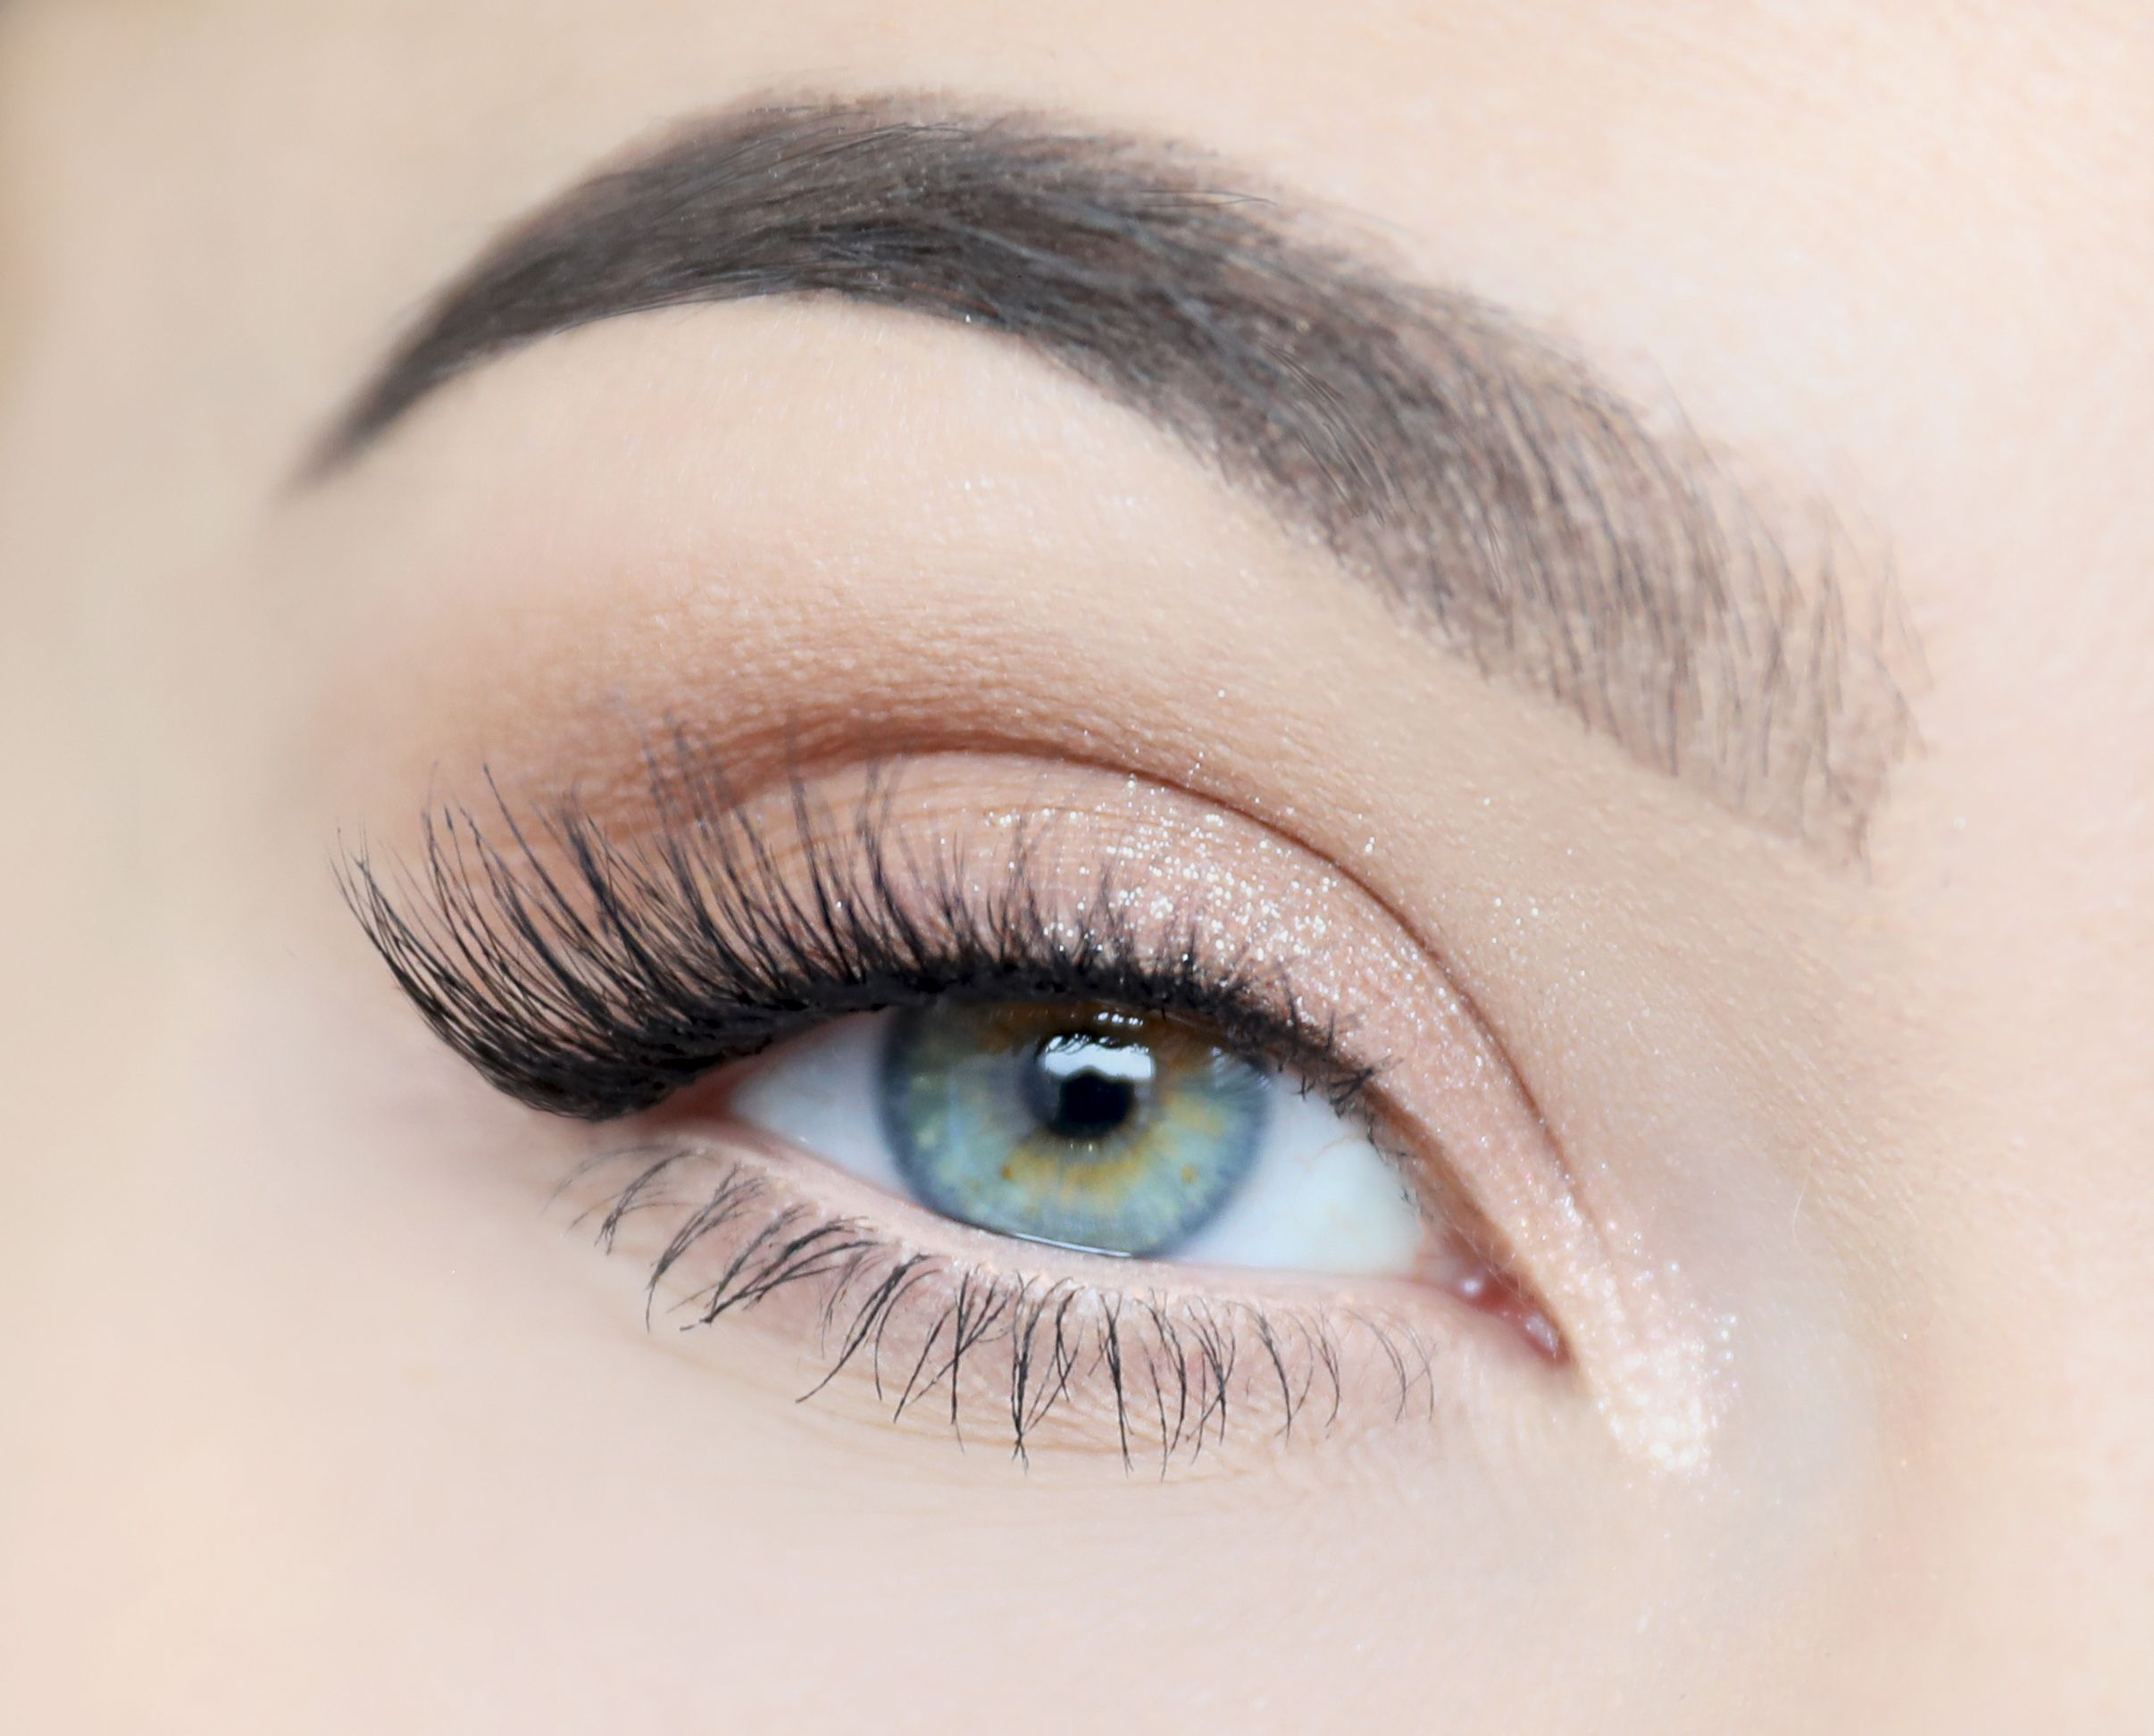 Strip lashes - Perfect Eyelashes: Eyelash extension salons based in LondonPerfect Eyelashes: Eyelash extension salons based in London